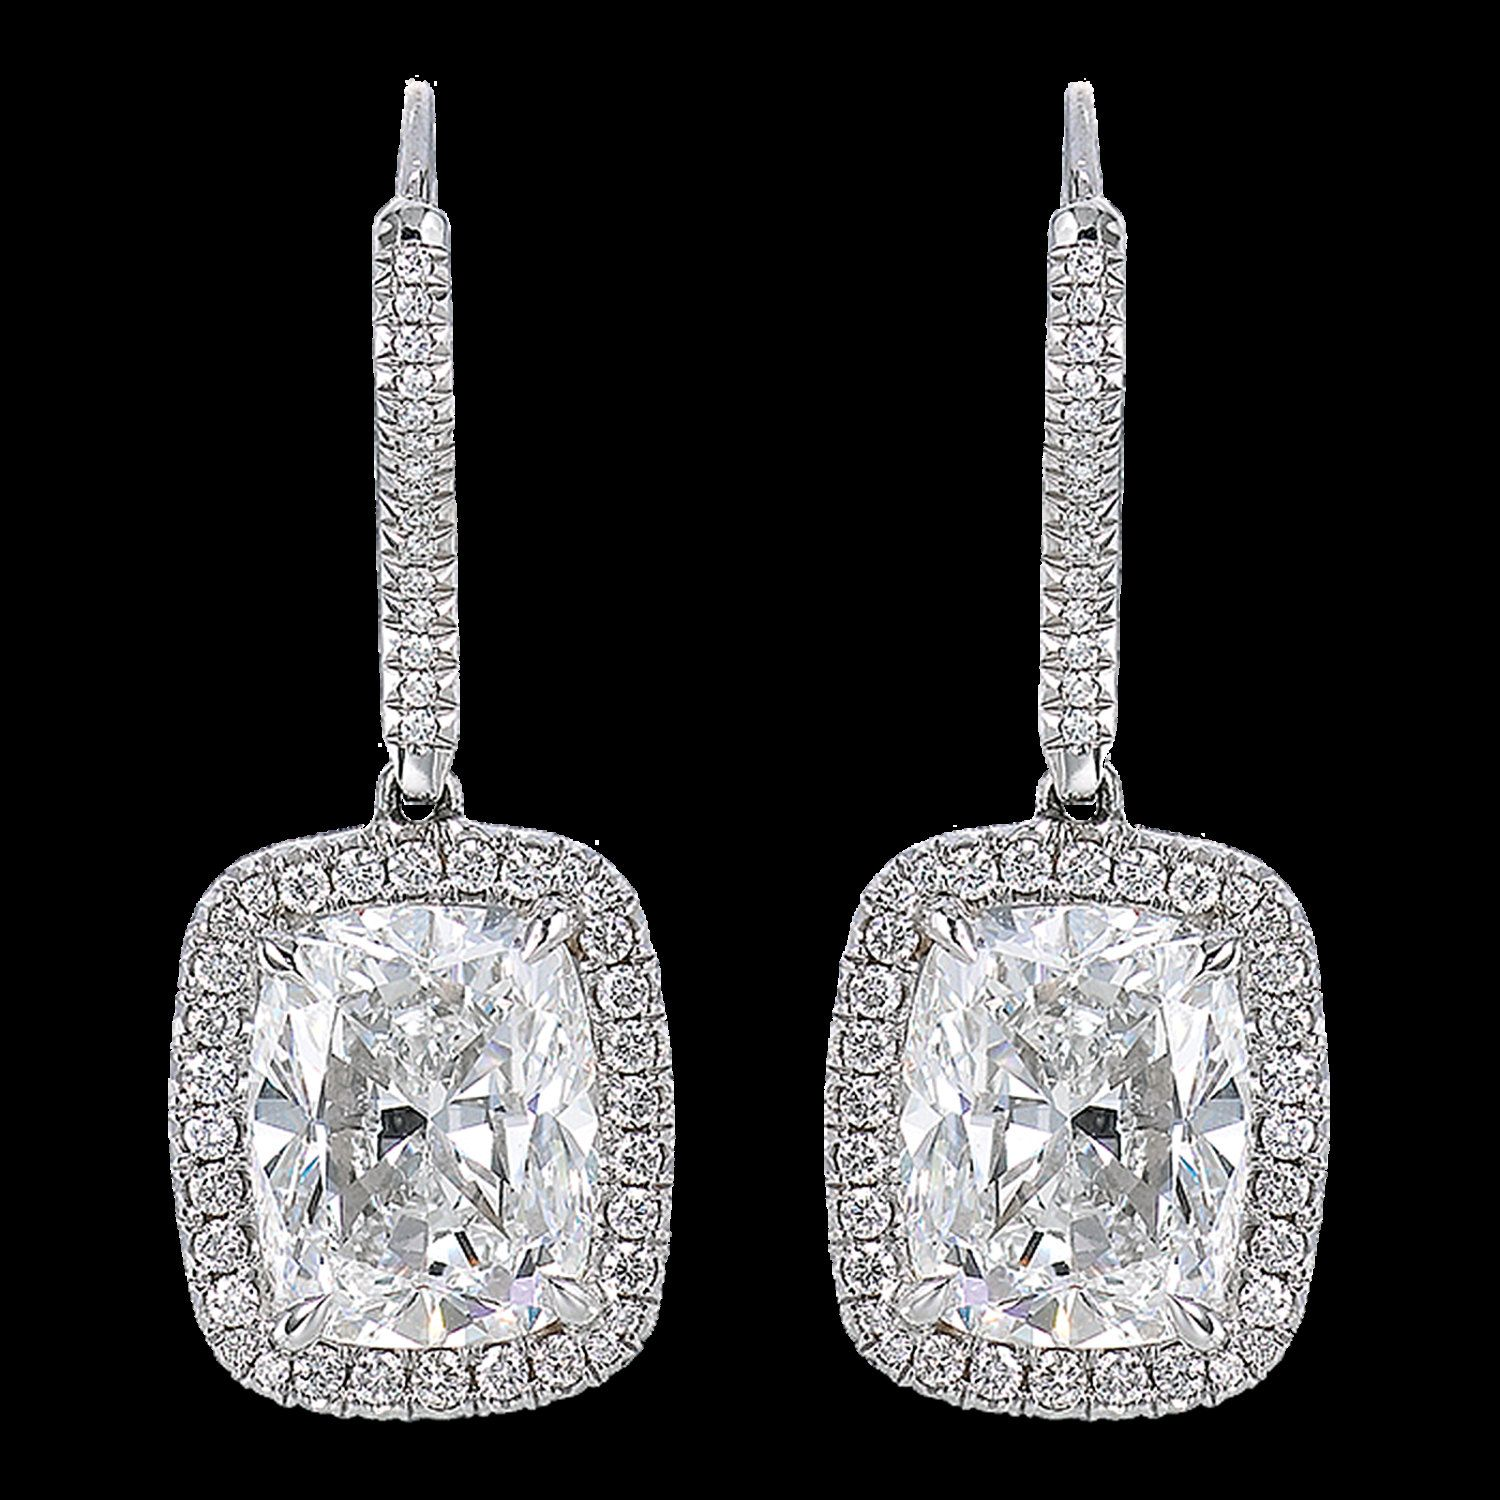 Gia Certified Flawless 2 00 Carat Cushion Cut Drop Diamond Earrings 18k White Gold By Diamondjewelersco On Etsy